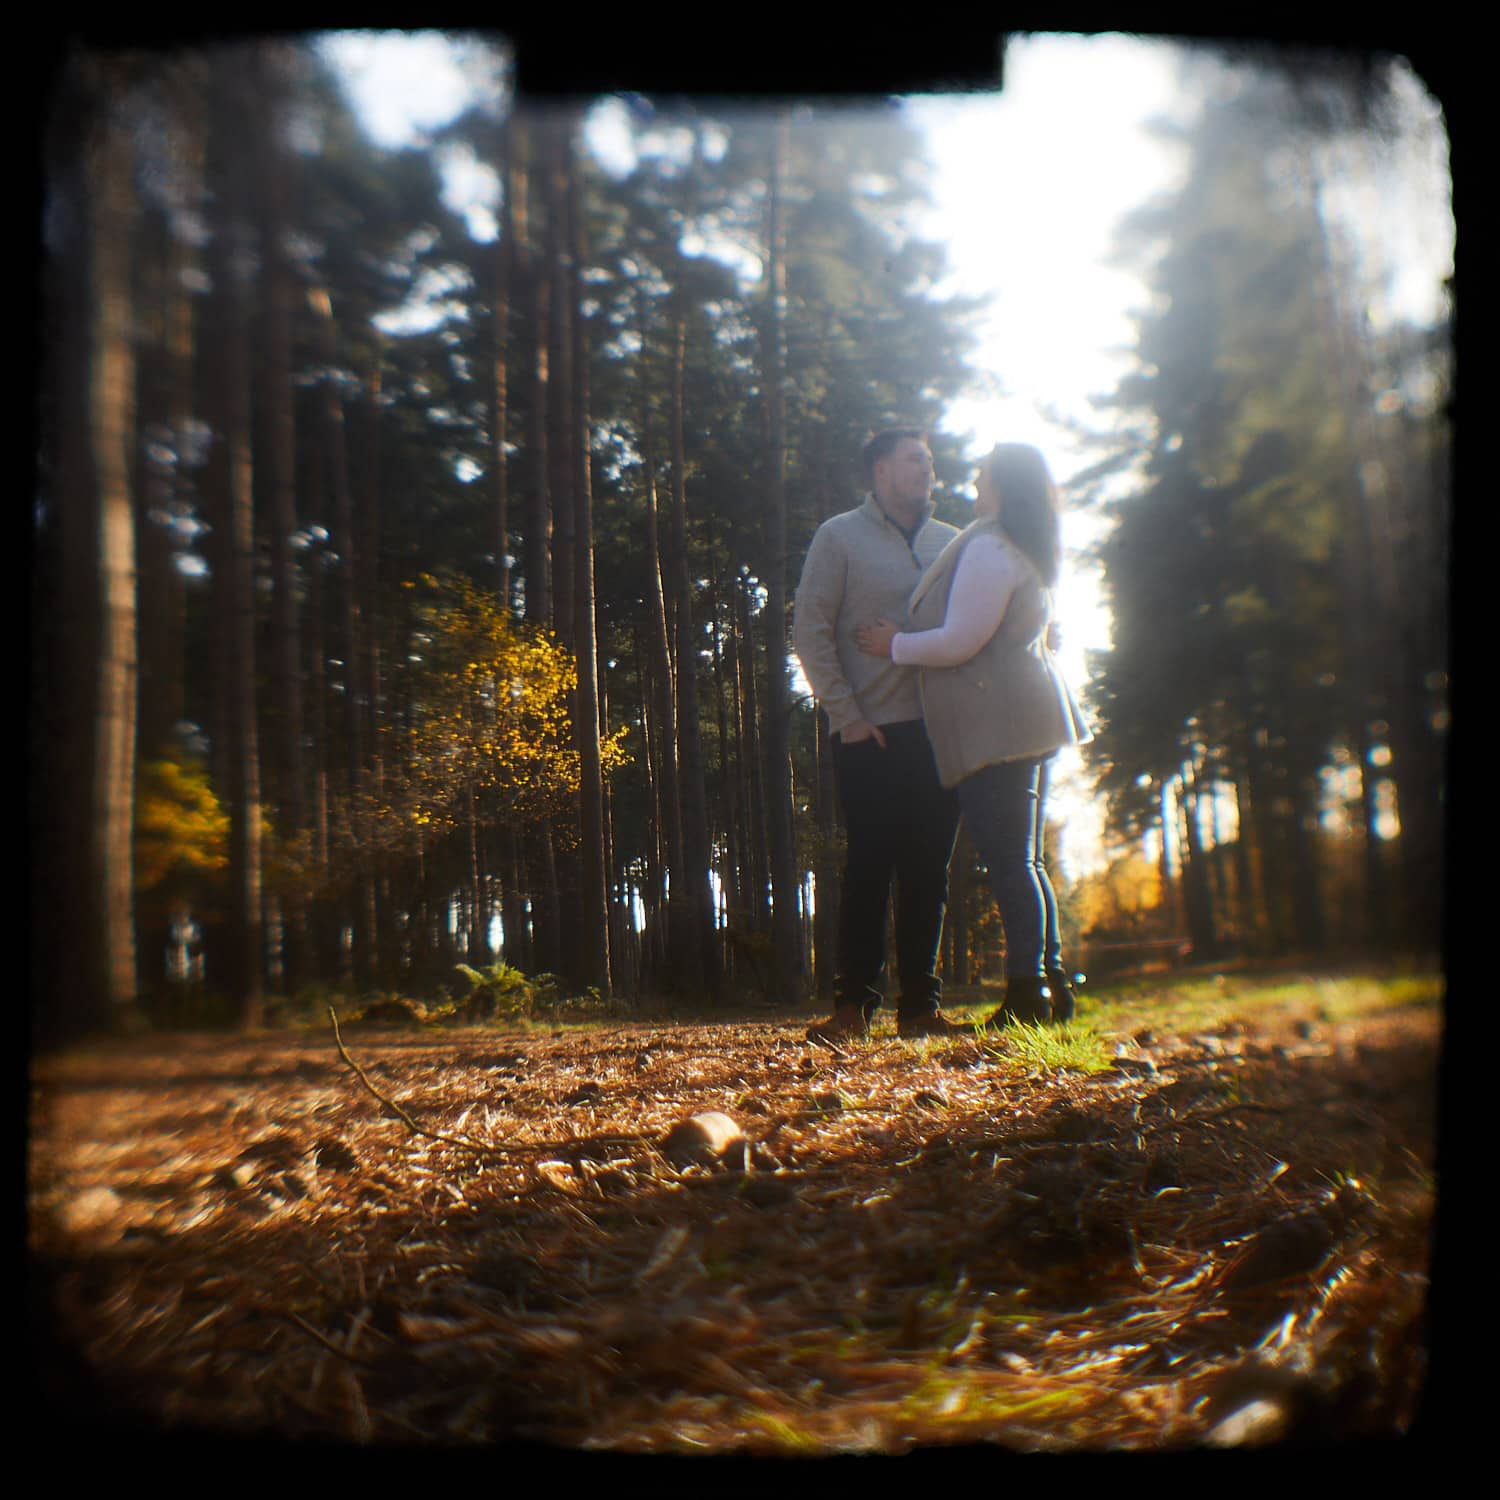 Shooting through a vintage camera a photo gives a vintage effect of a couple kissing in Woodhall Spa, Lincolnshire